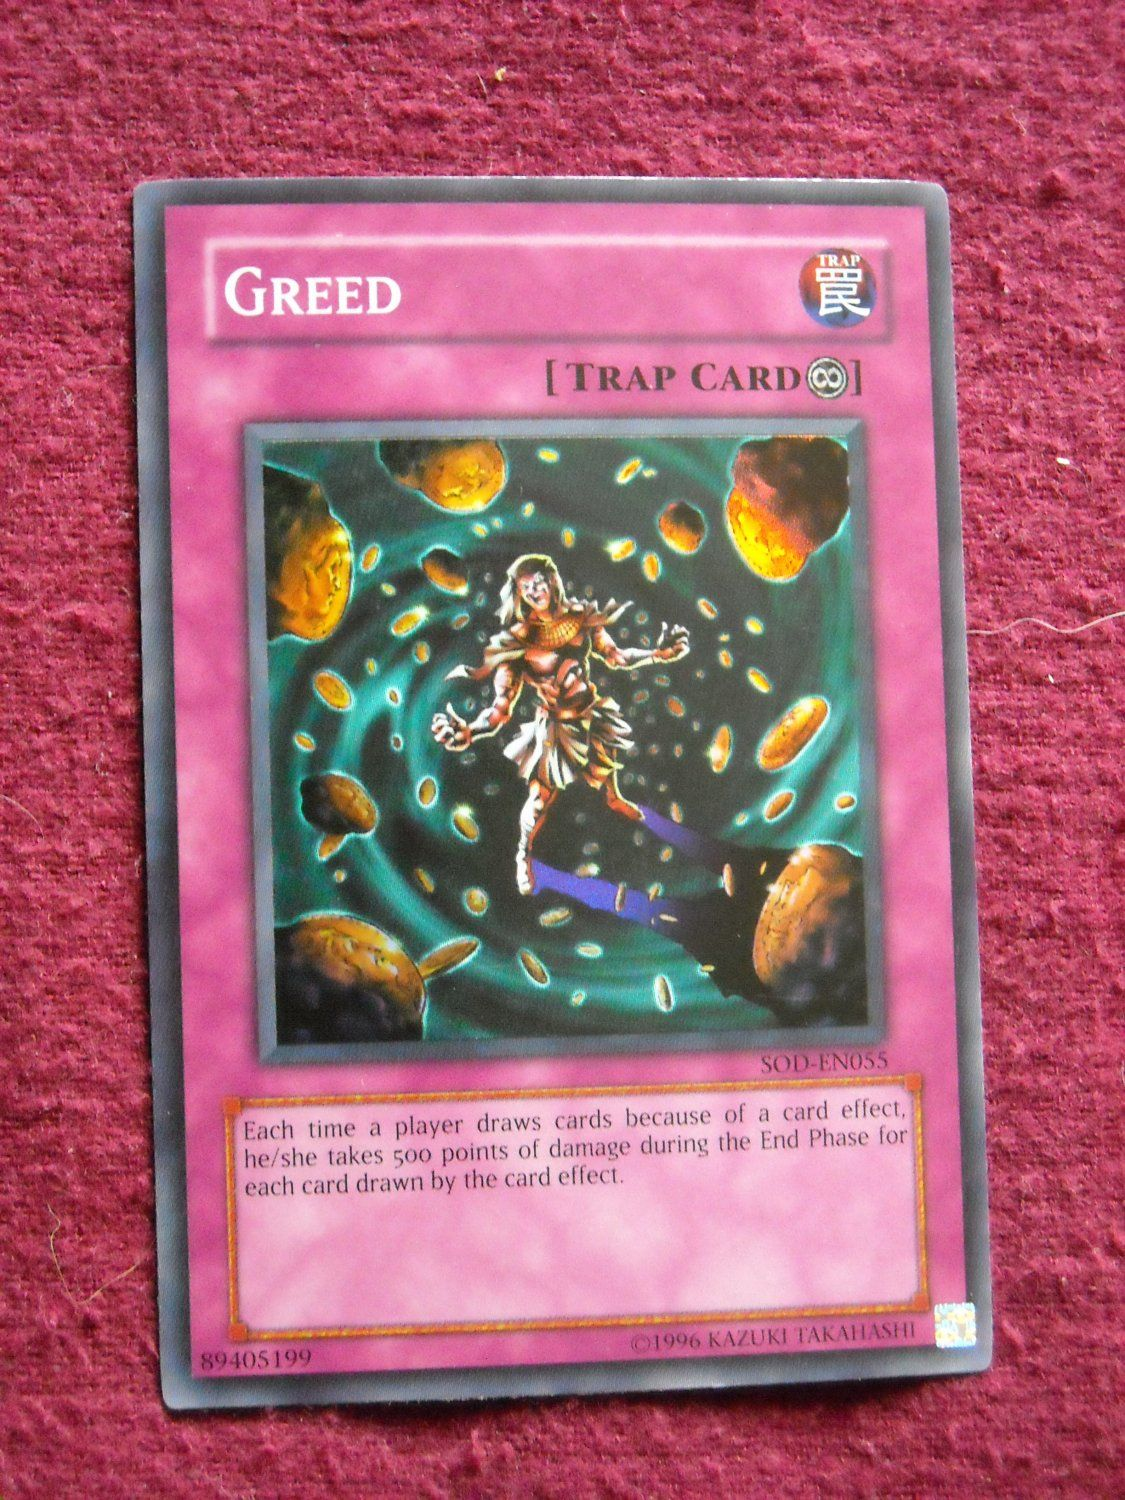 yu gi oh trading card greed type trap trap type continuous